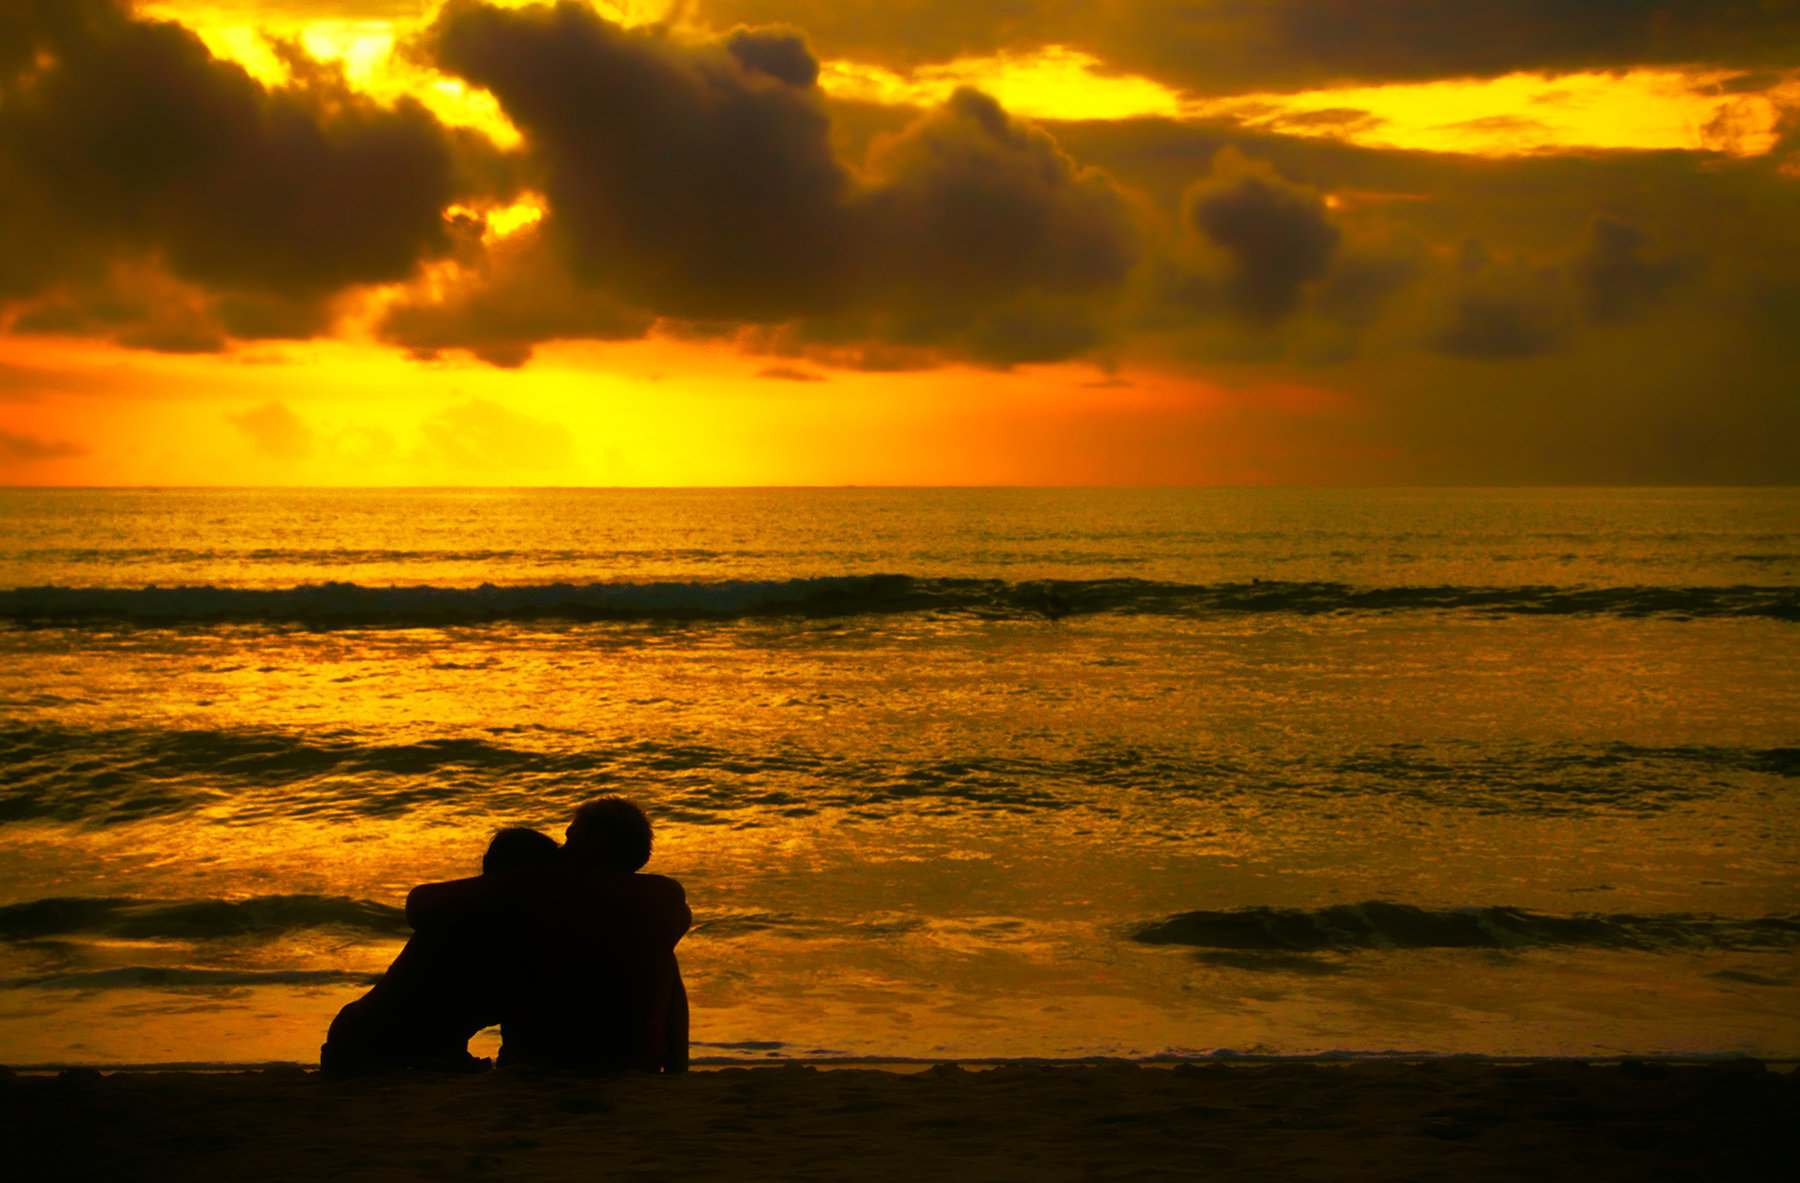 Romantic couple sitting and hugging on the beach at sunset silhouette, Bali, Kuta Beach, Indonesia